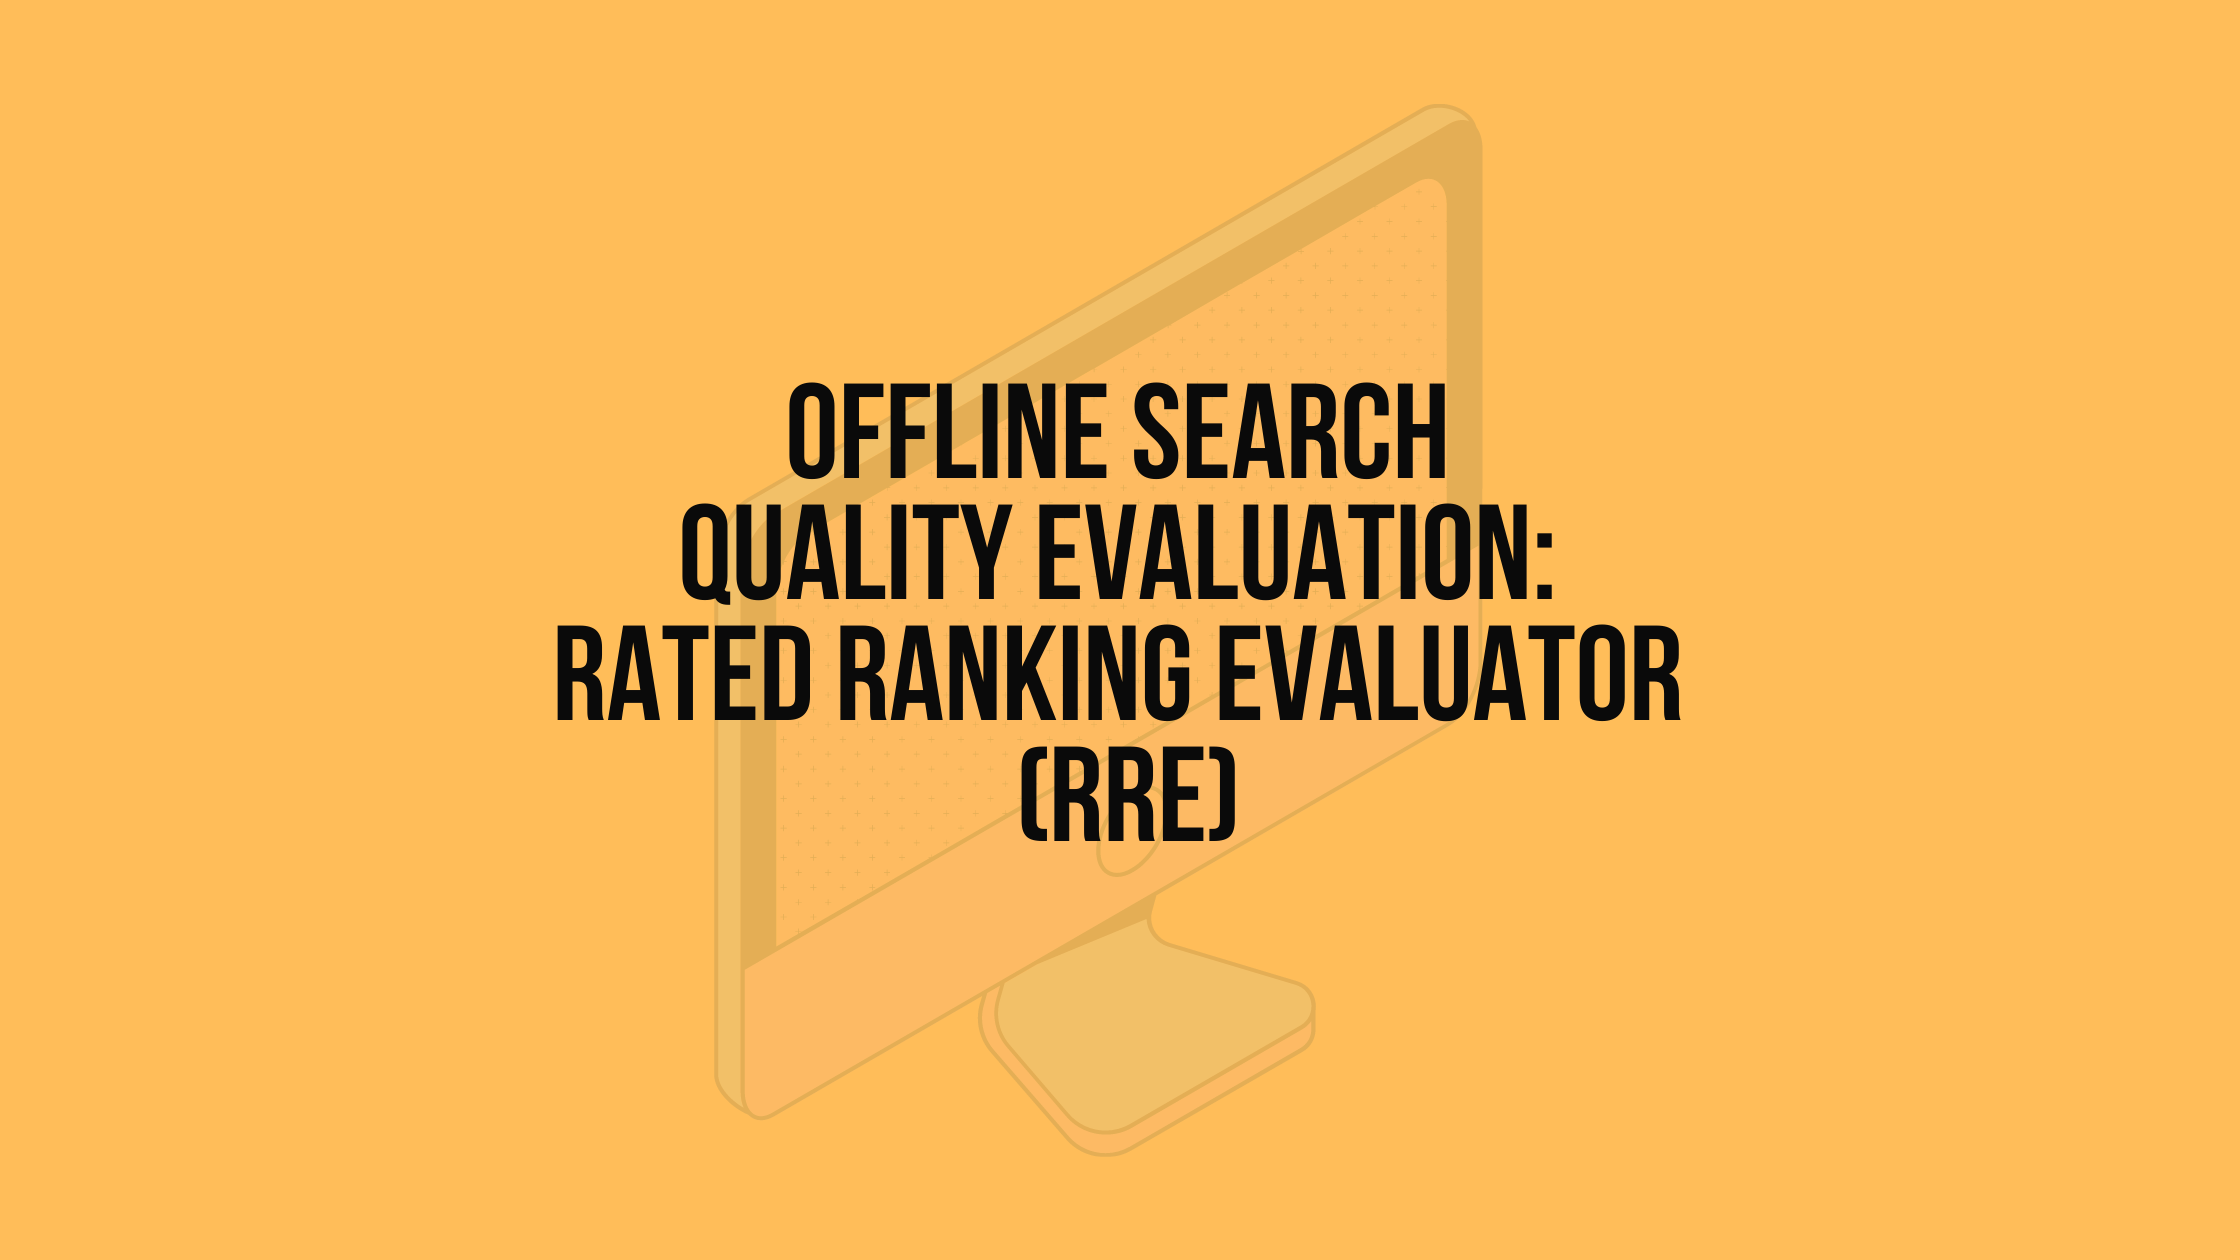 offline search quality evaluation